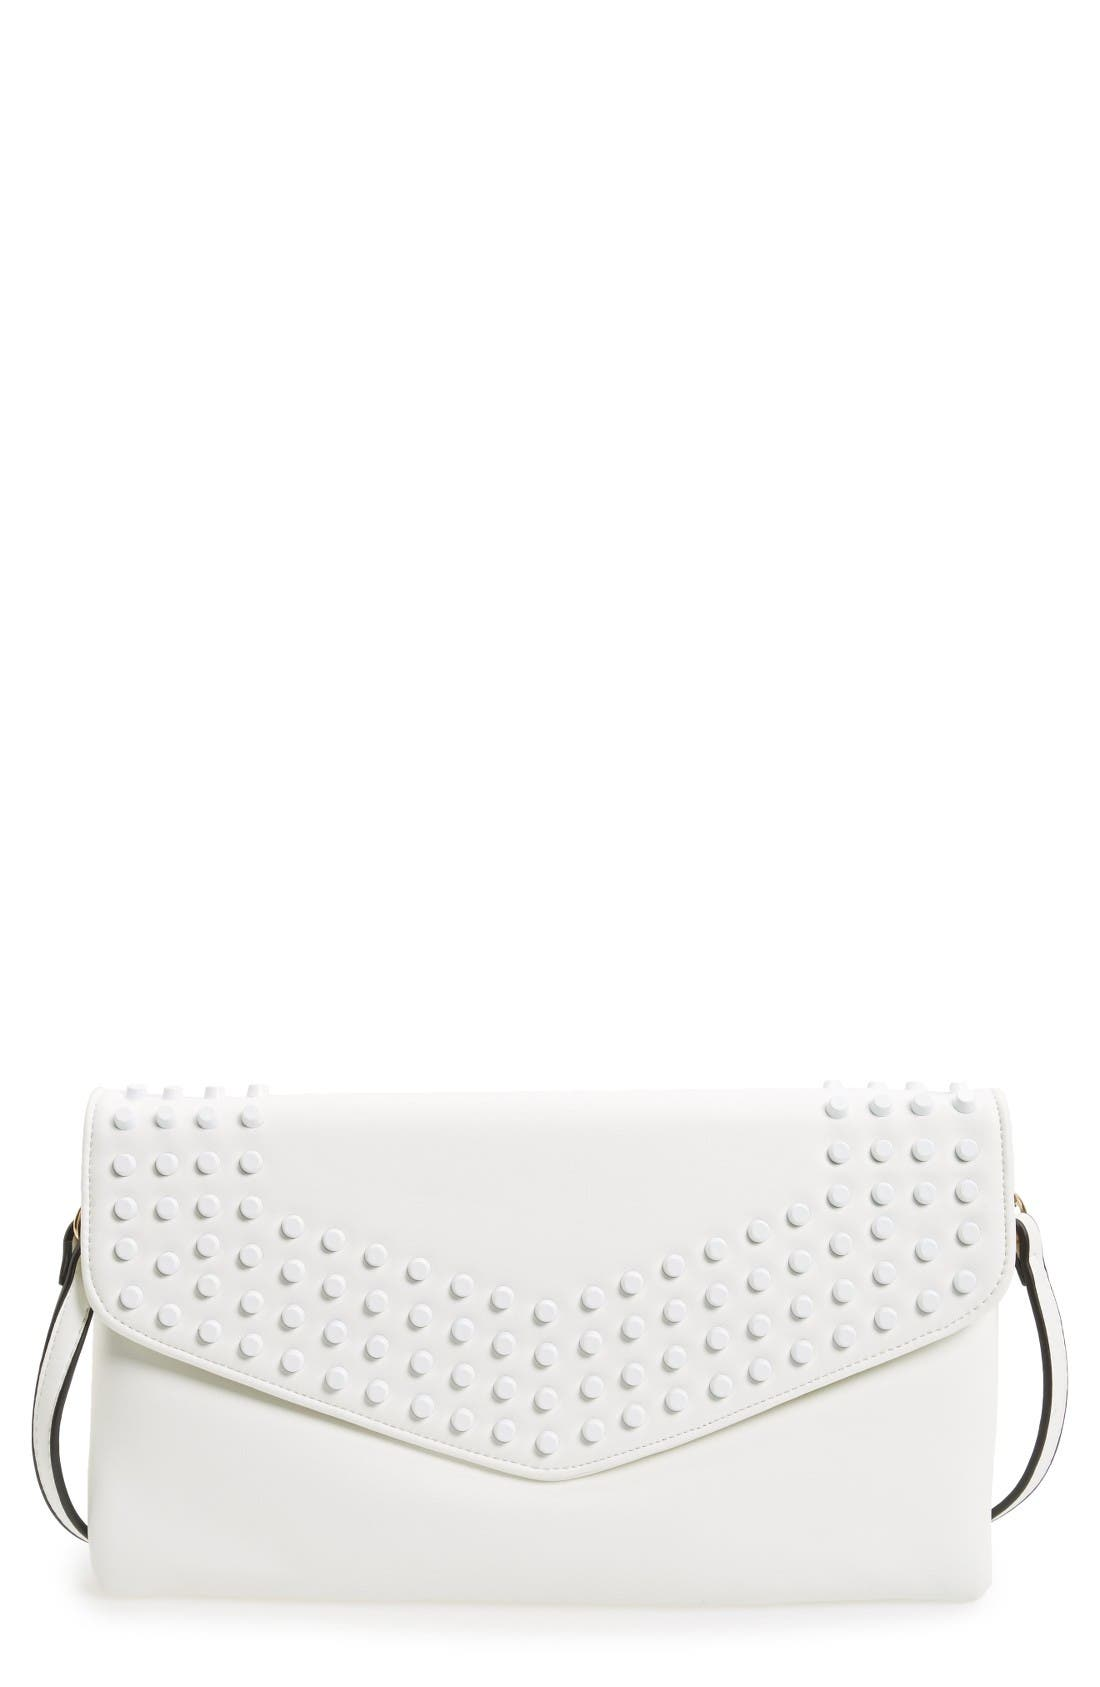 Main Image - Sondra Roberts Studded Faux Leather Envelope Clutch